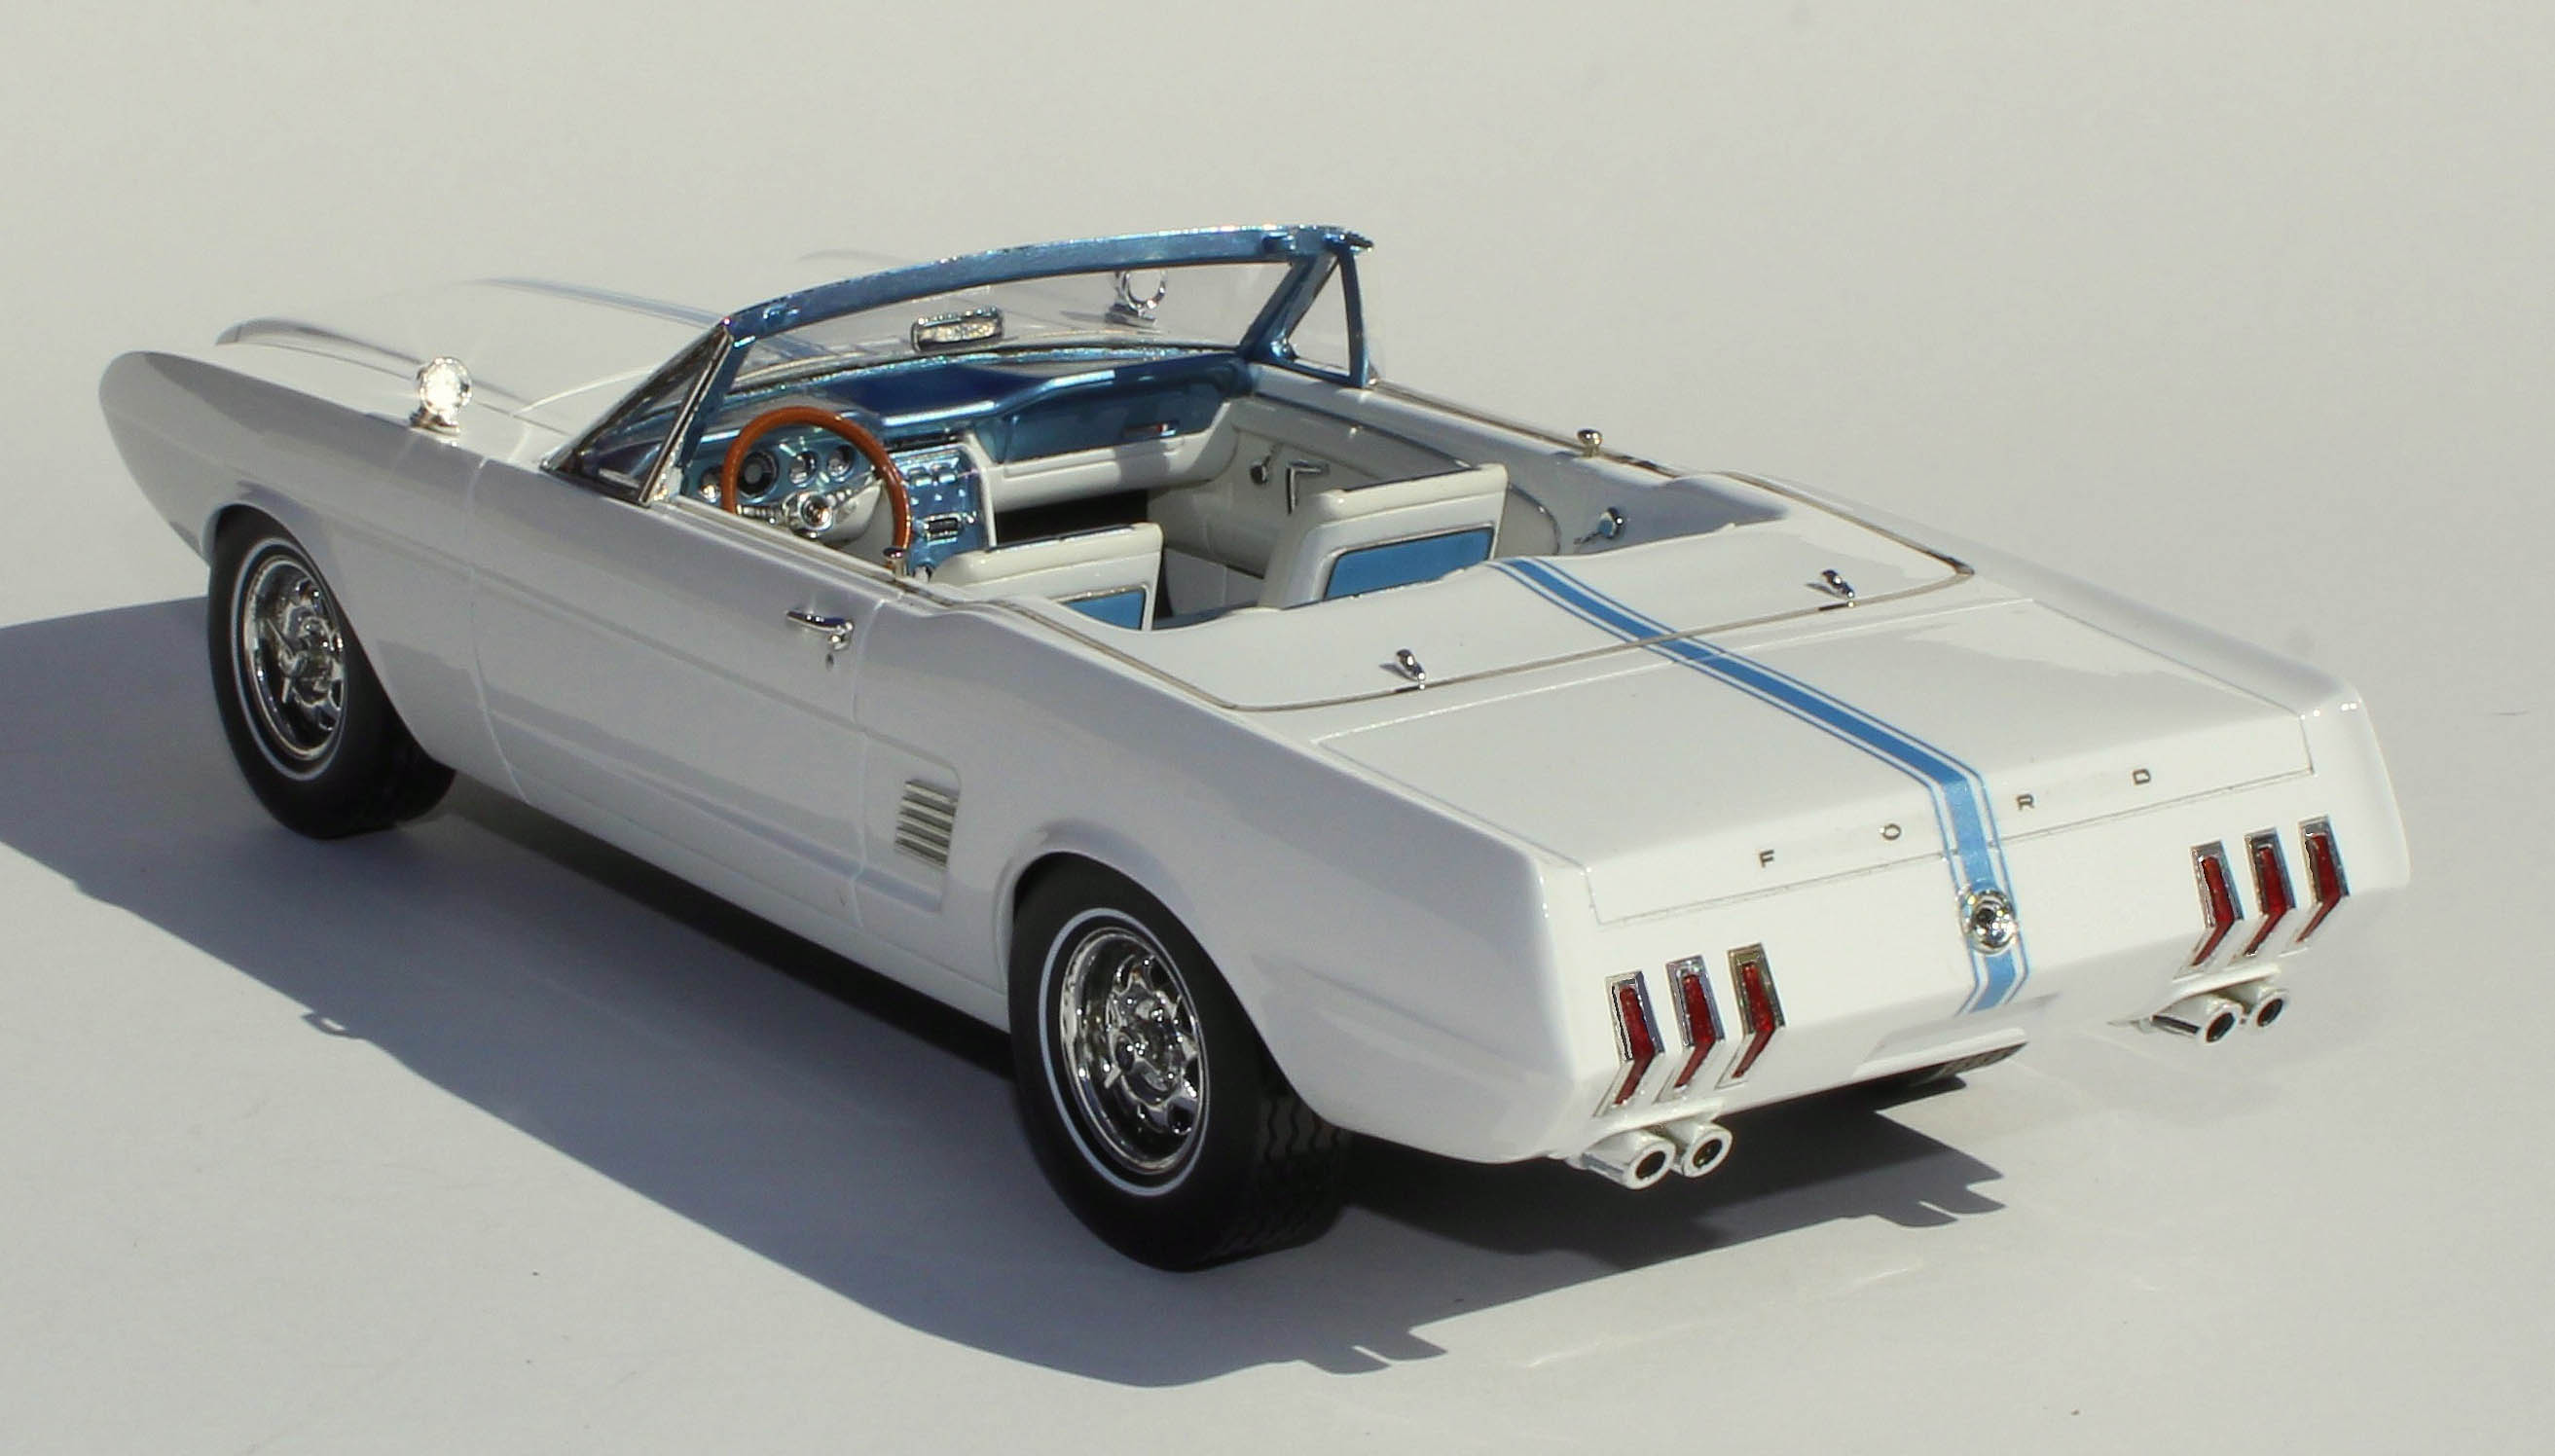 Automodellos 1963 ford mustang ii concept